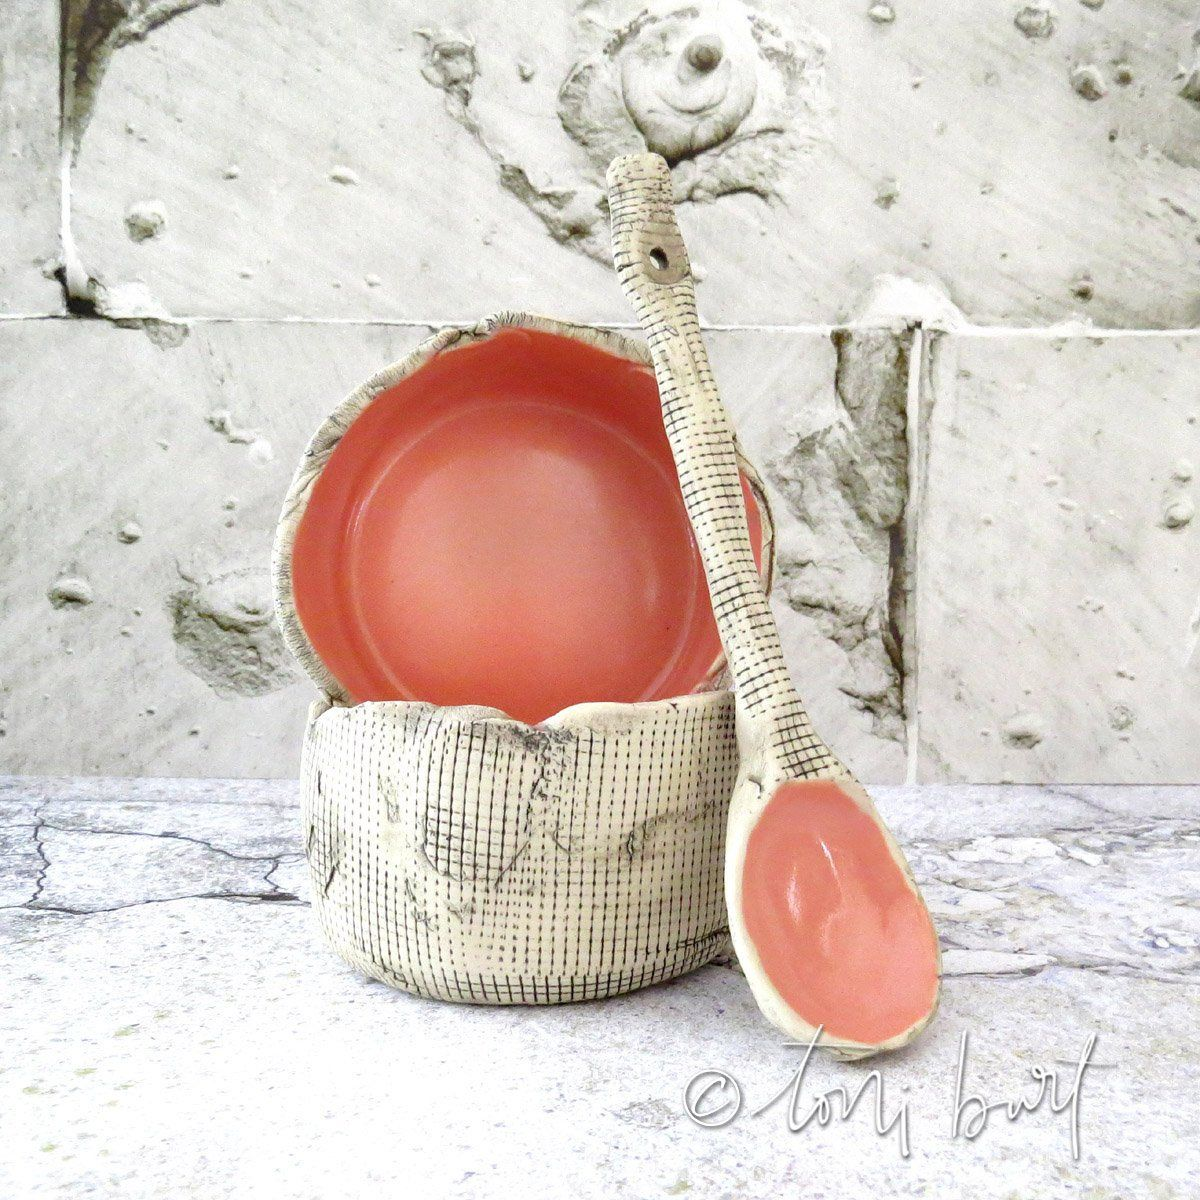 pair of 2 small ceramic bowls with spoon - organic pottery - handmade - of the earth - rustic decorative bowls - OOAK pink salmon glaze